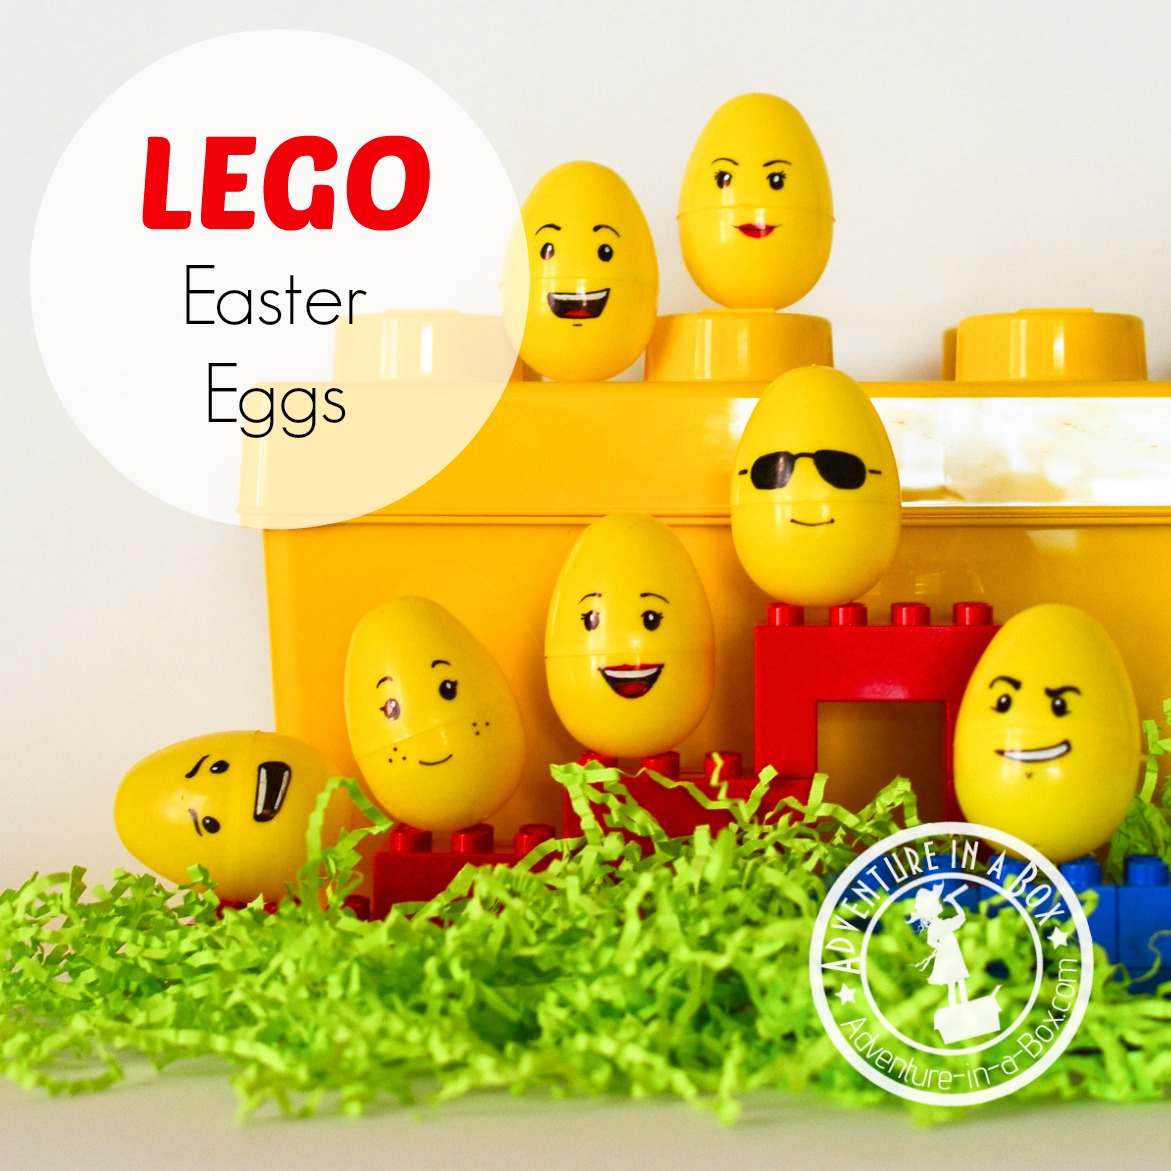 Lego Eggs: an Easter craft that adults and kids can enjoy!